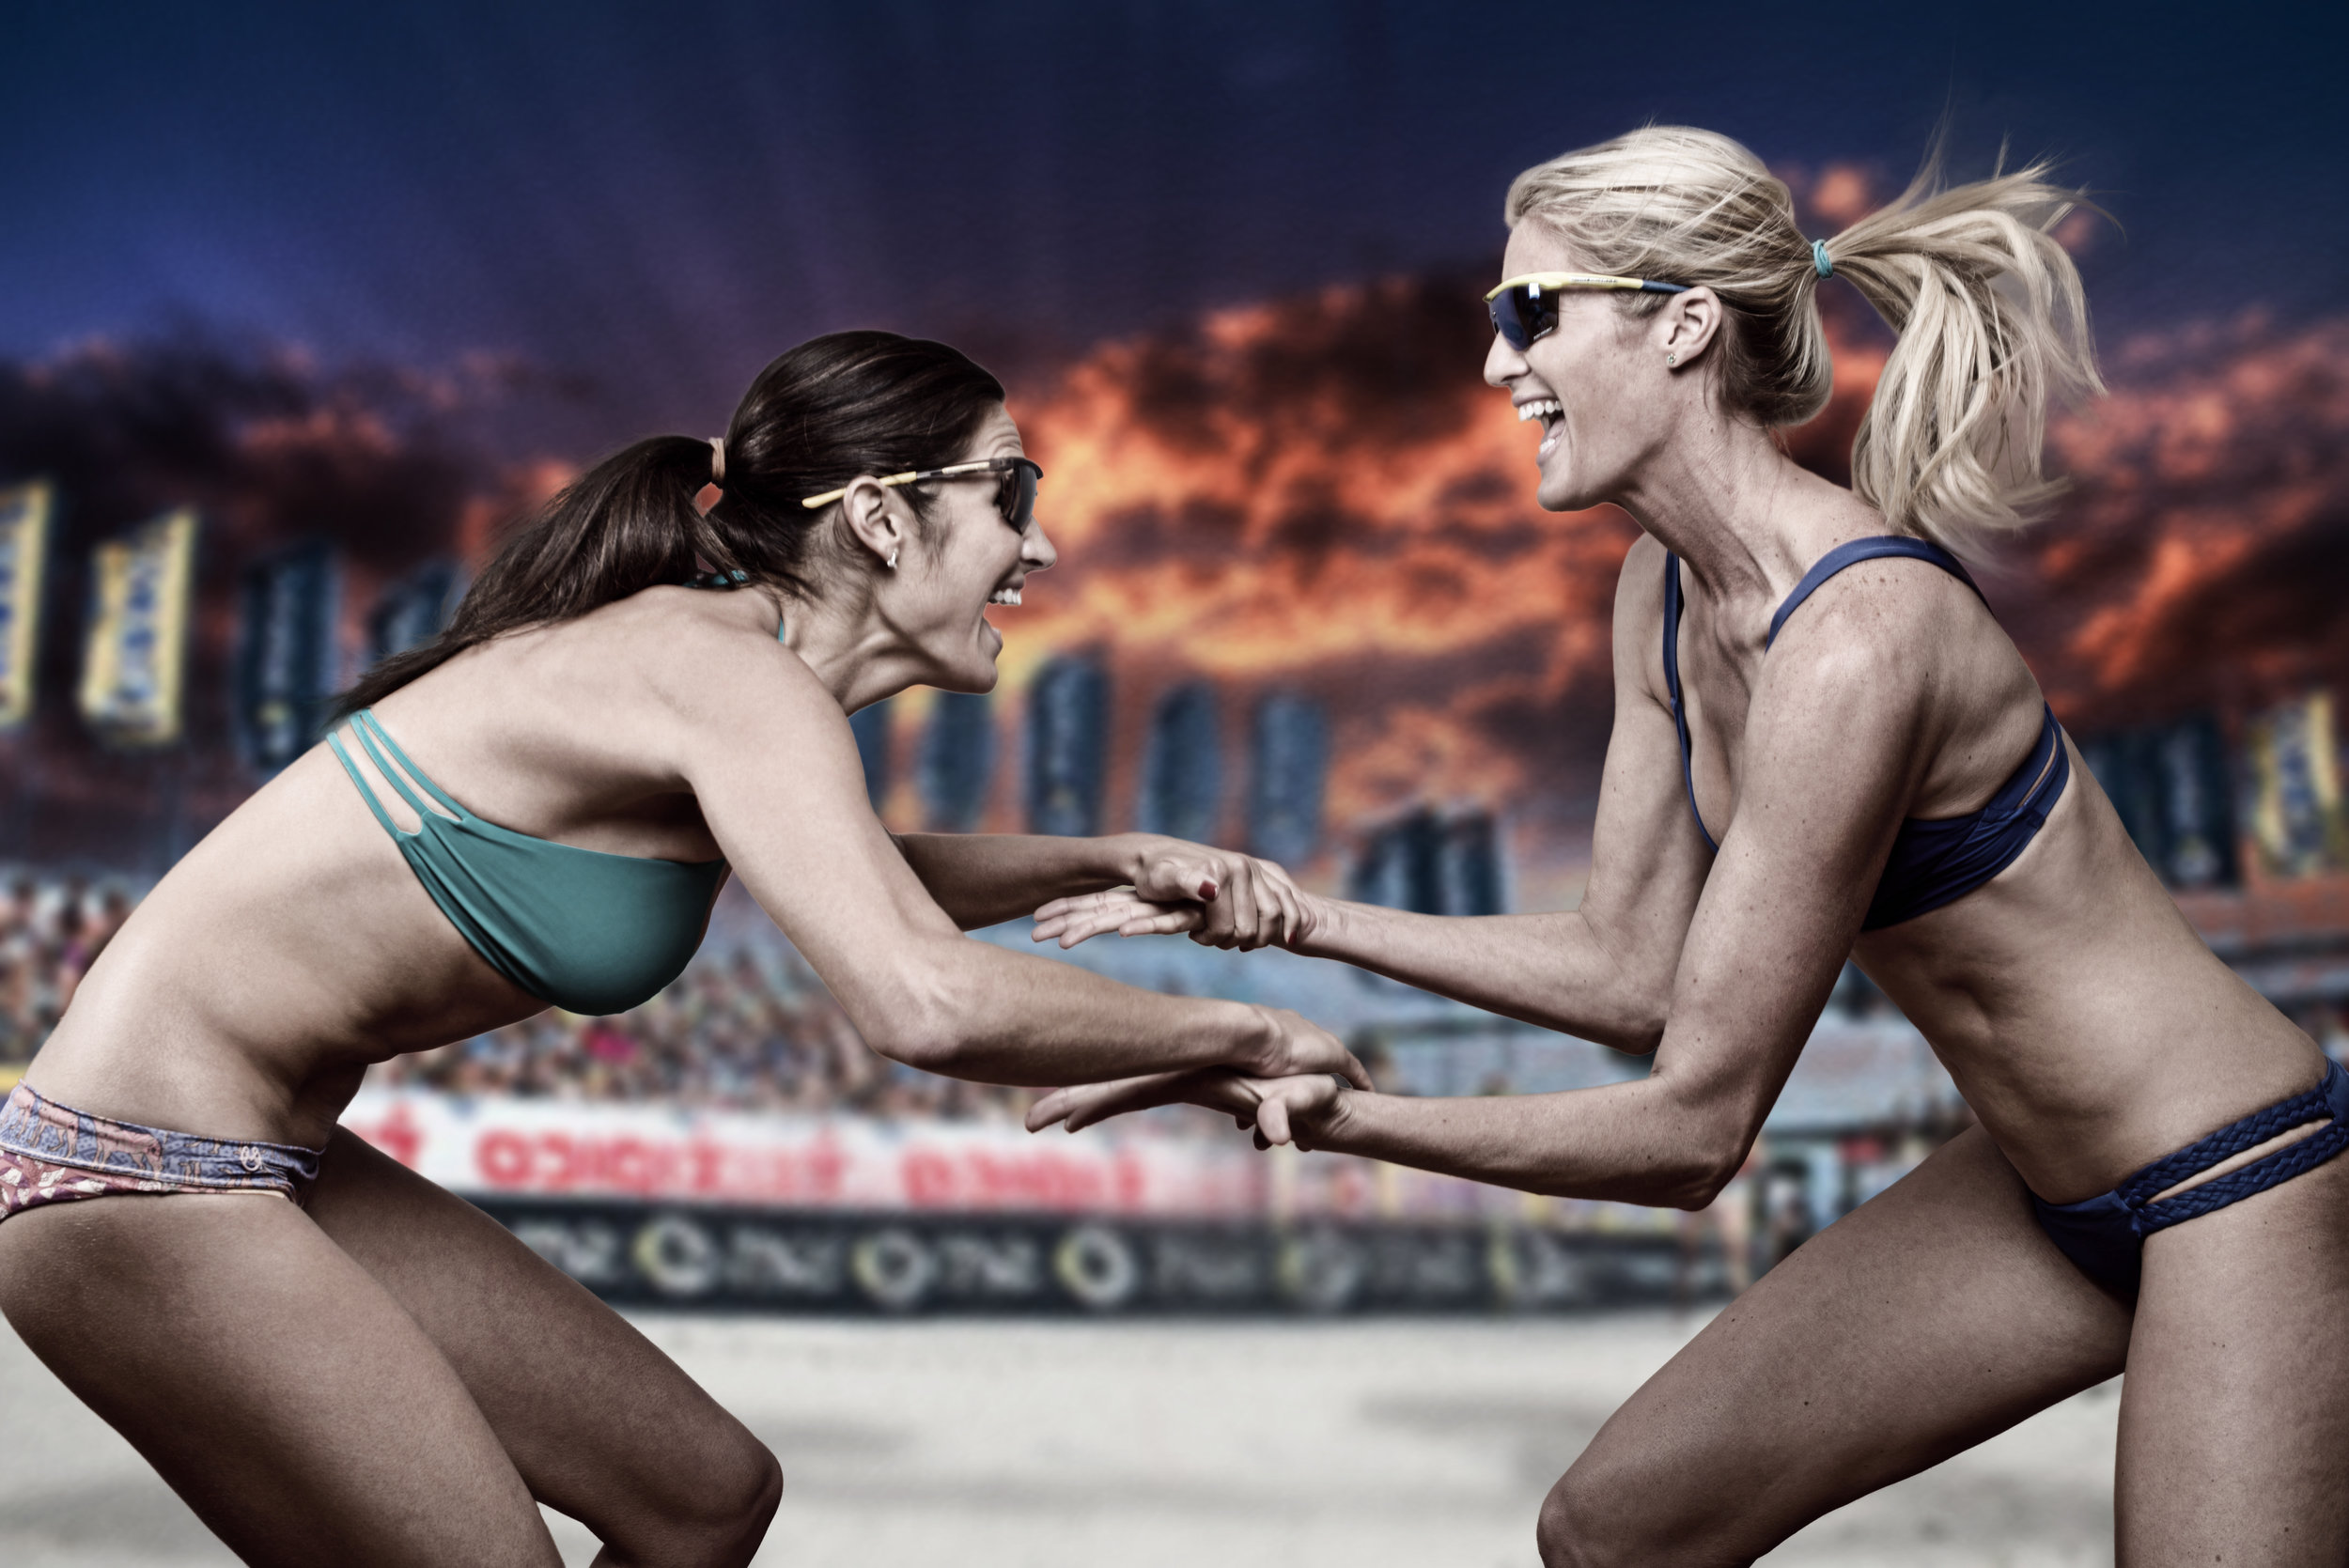 Megan-Wallin-and-Laura-Anderson-Beach-Volleyball-Professional-player-Enrique-Pino-Commercial-Photography-Sarasota-Florida-Photographer 3.jpg